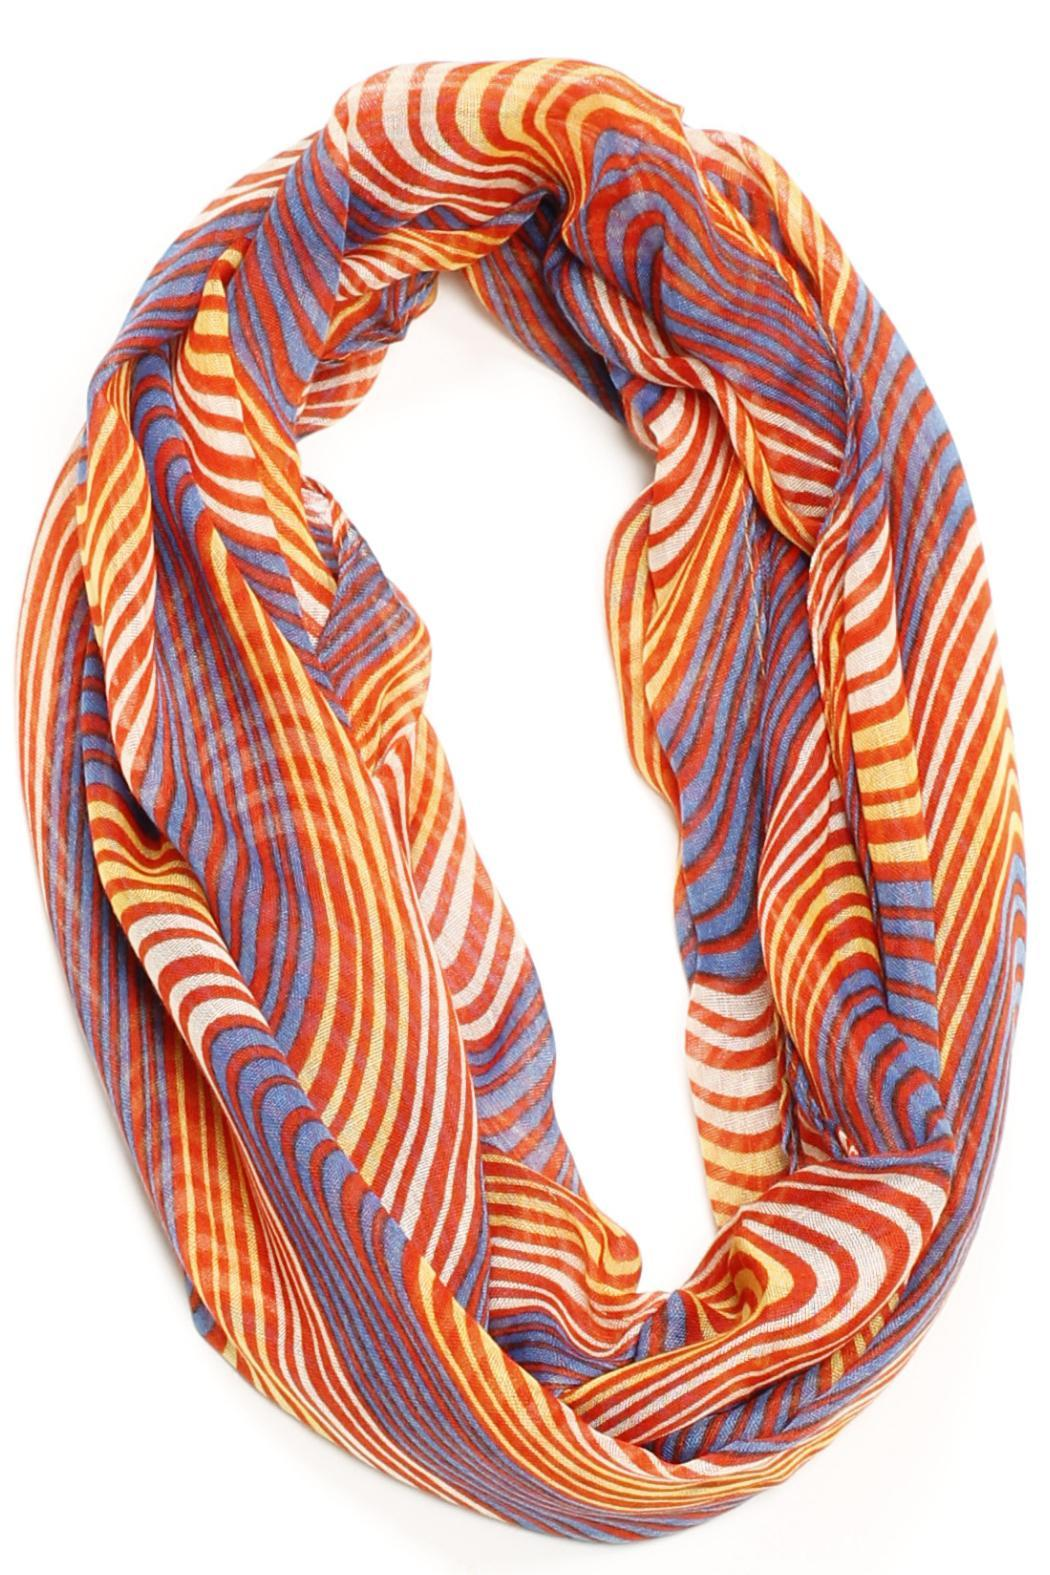 Violet Del Mar Striped Infinity Scarf - Main Image